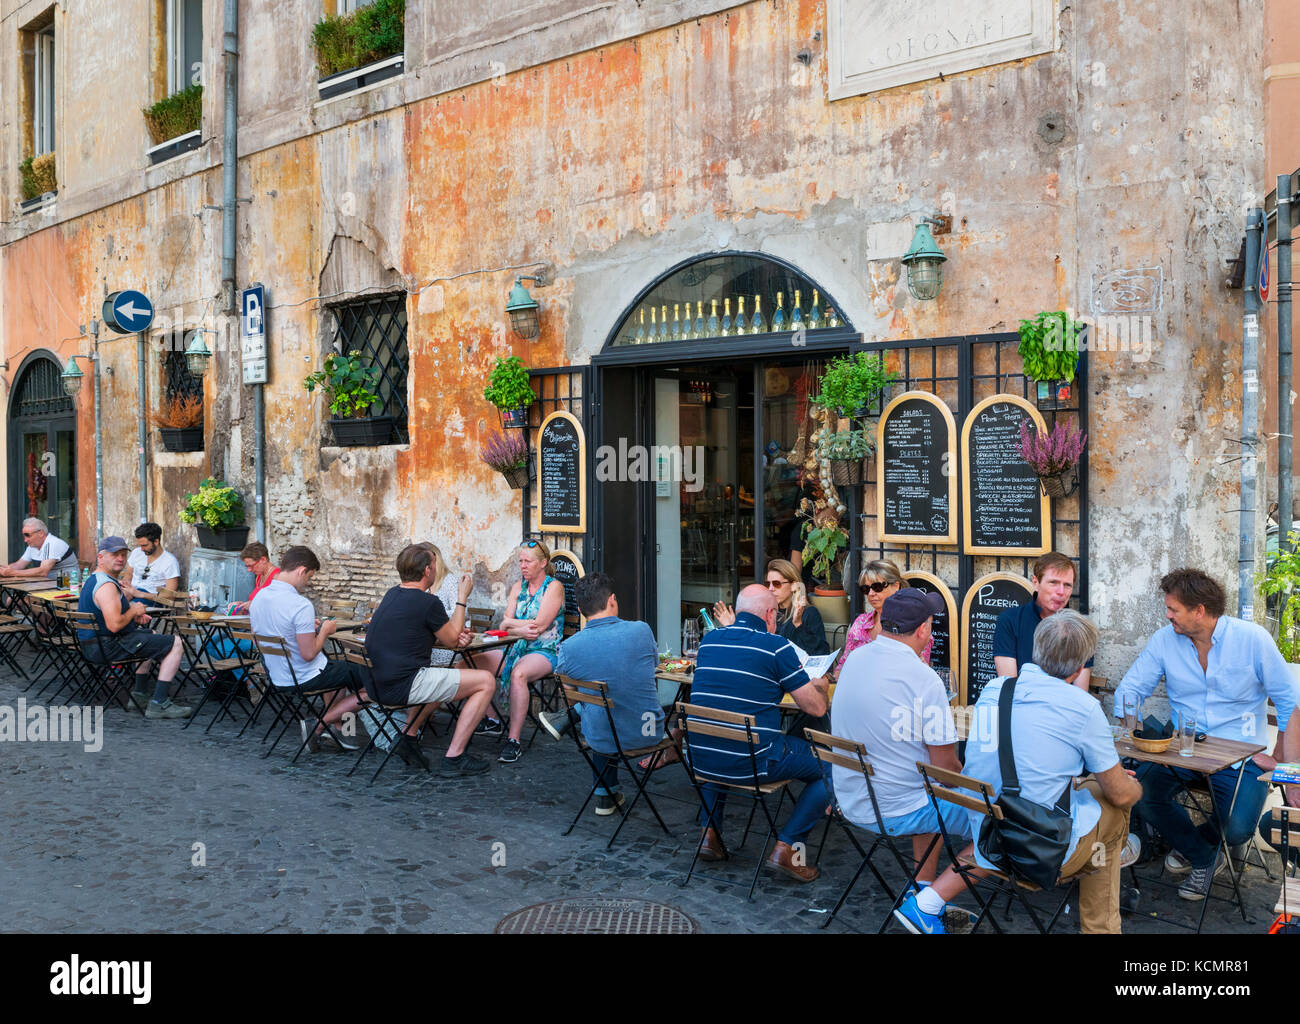 Sidewalk cafe on Piazza dei Coronari in the historic centre, Rome, Italy Stock Photo